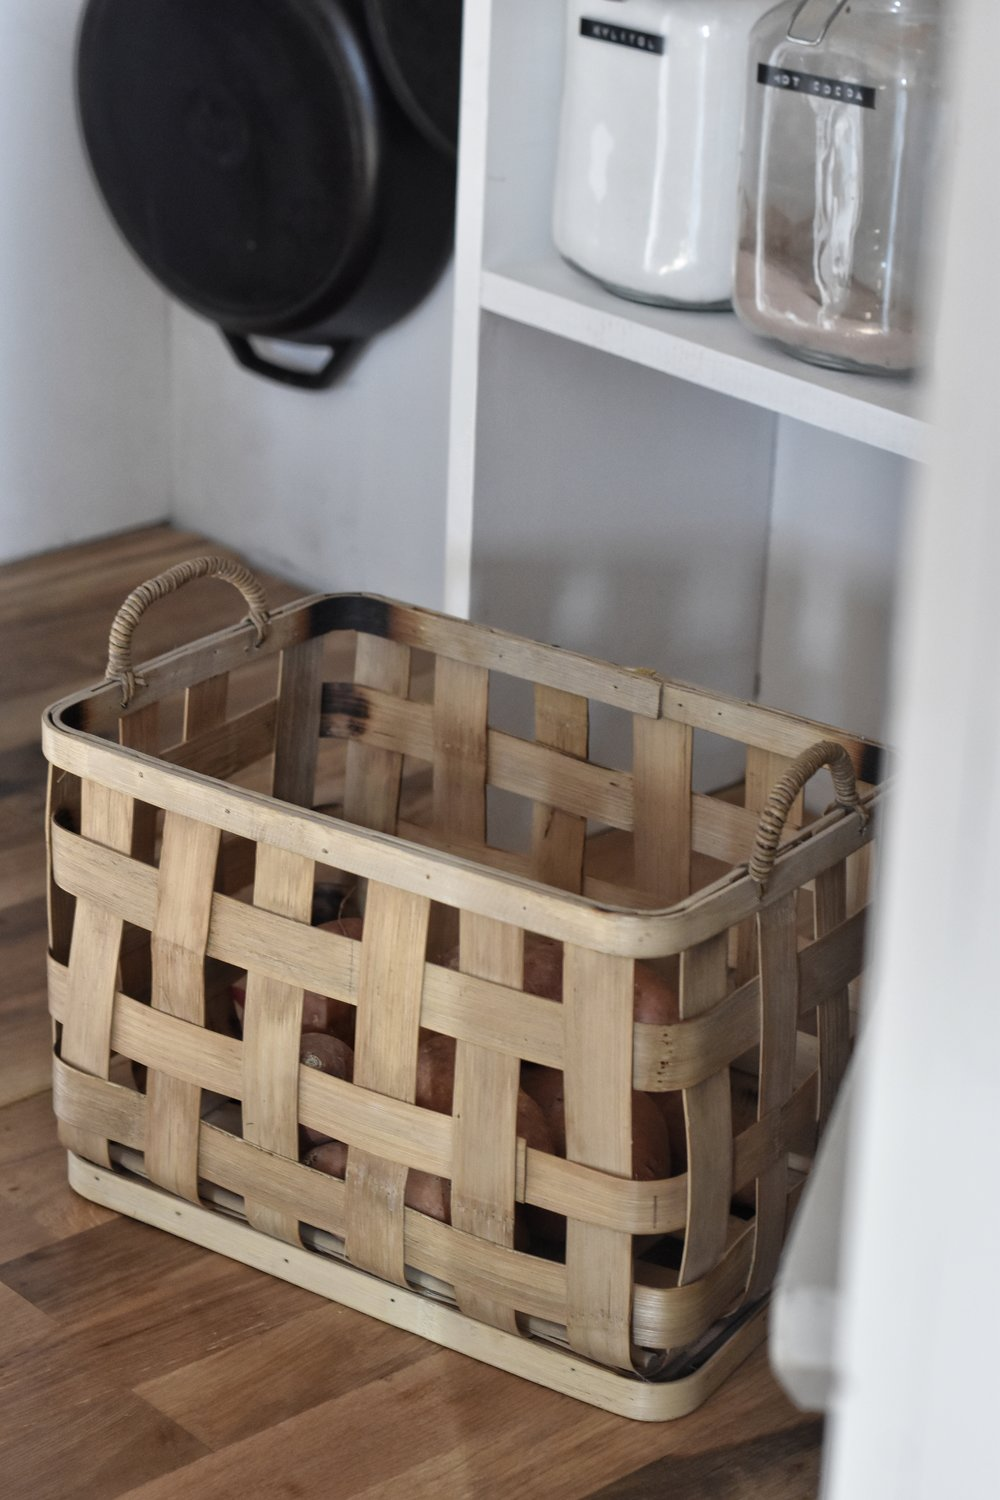 Pantry baskets and organization ideas | Rocky Hedge Farm